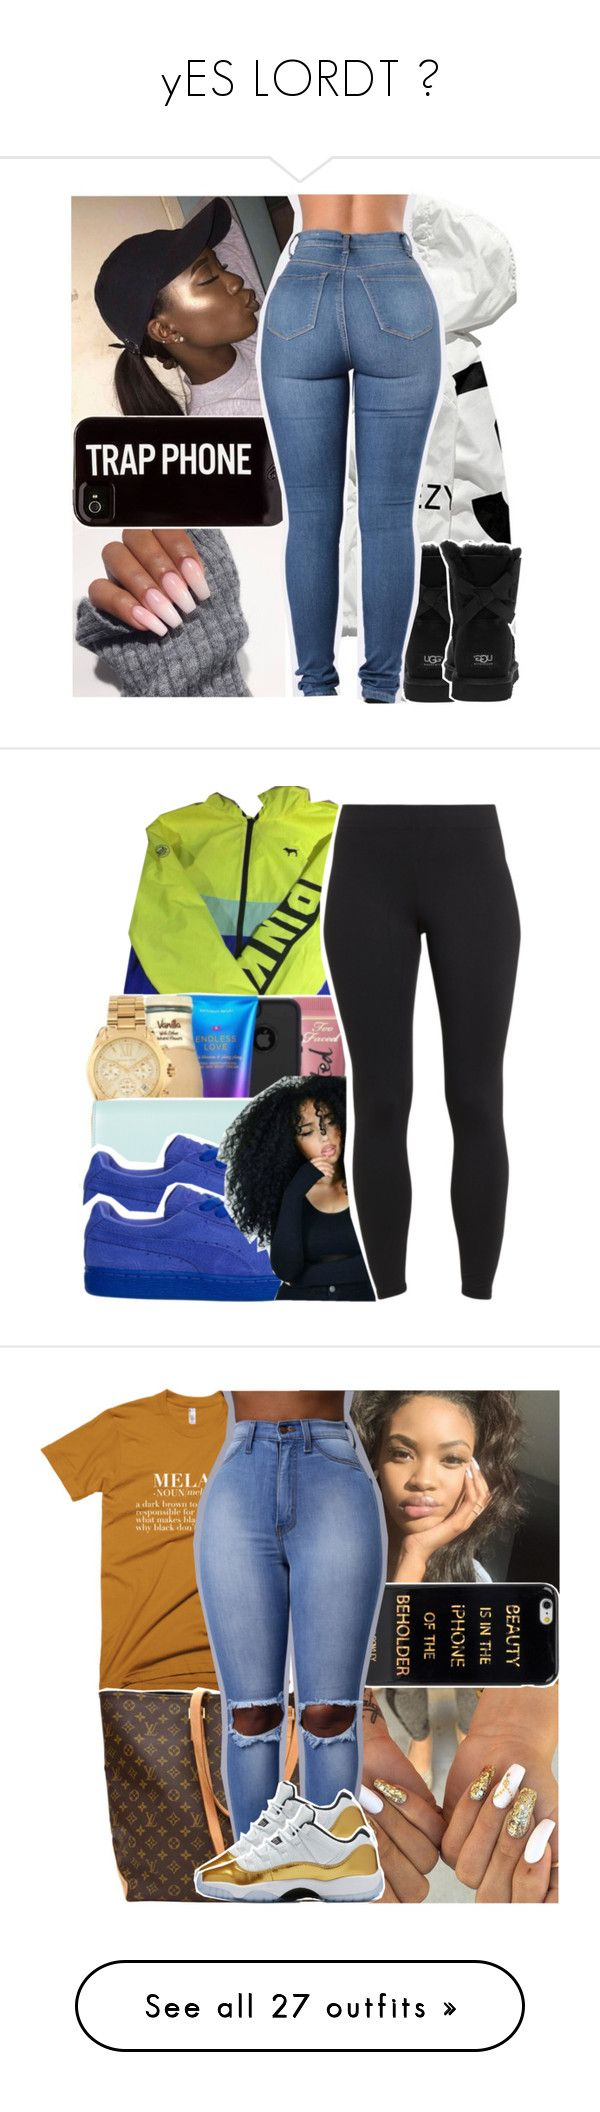 """yES LORDT 😻"" by longlostputa ❤ liked on Polyvore featuring UGG Australia, Victoria's Secret, Paul Smith, Maidenform, Louis Vuitton, iHome, Hope, H&M, MICHAEL Michael Kors and Puma"